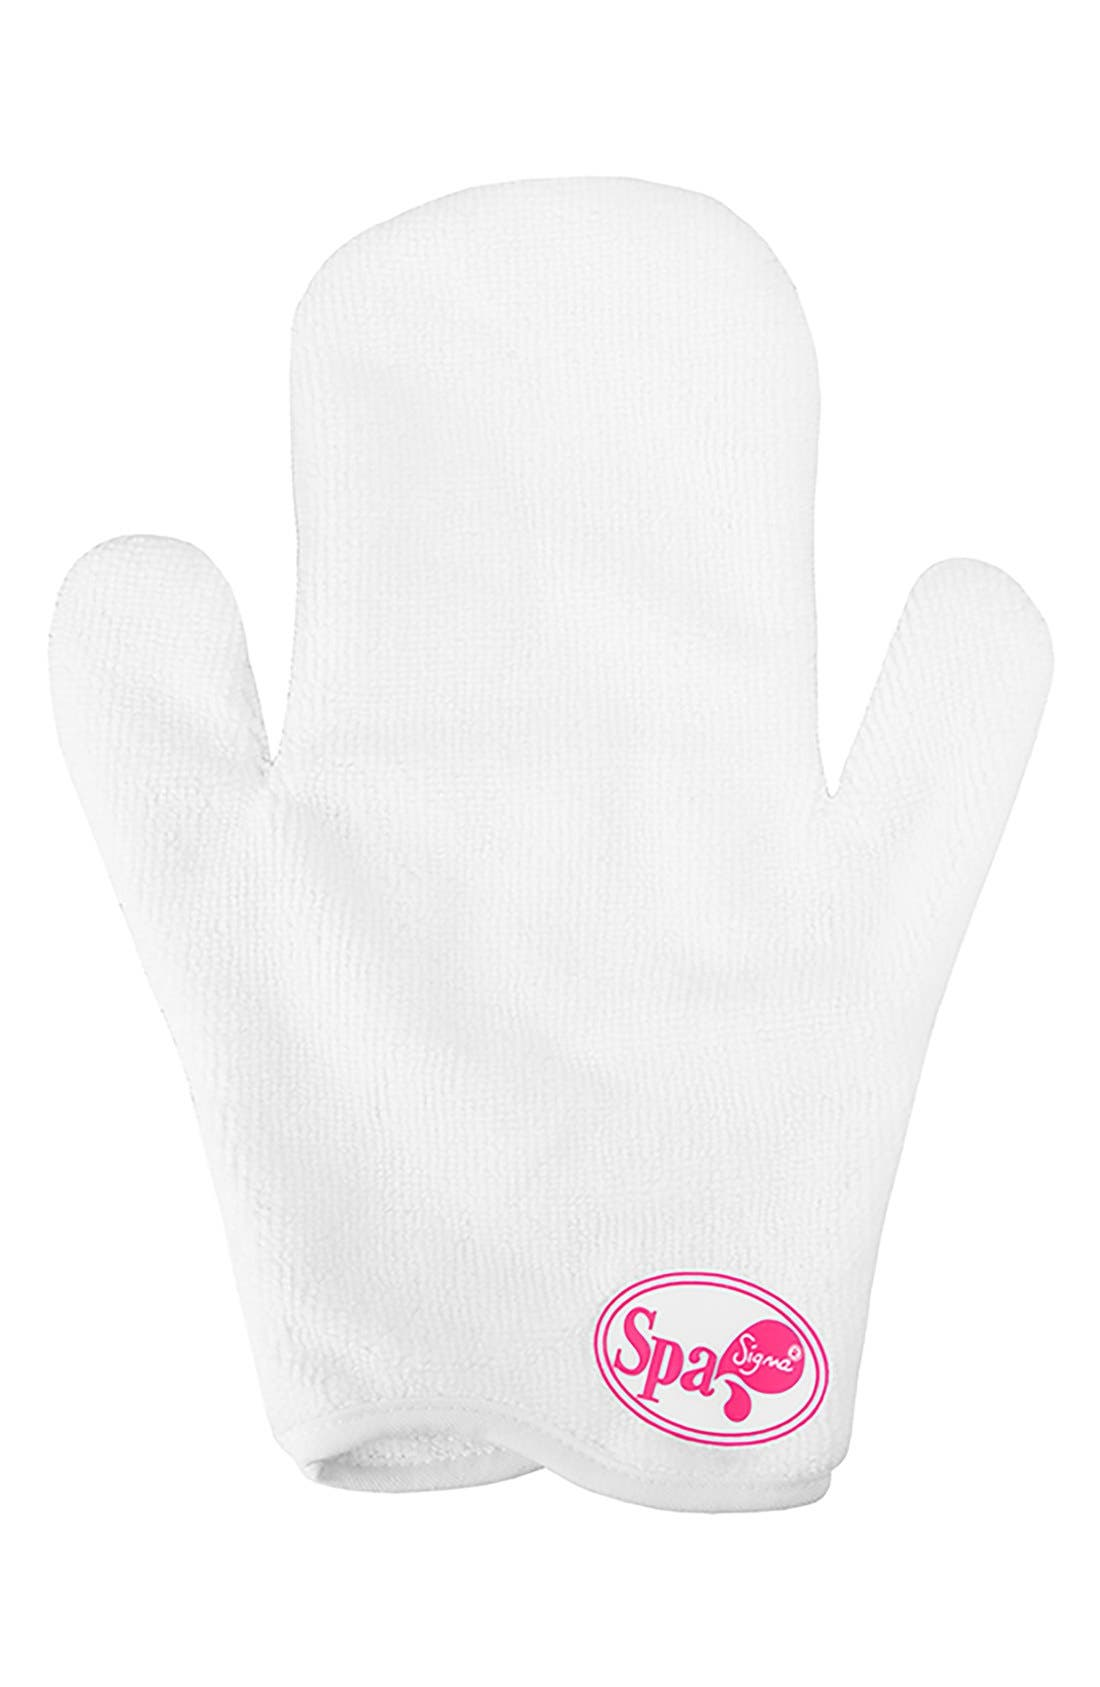 Sigma Spa<sup>®</sup> 2X Brush Cleaning Glove,                             Alternate thumbnail 4, color,                             NO COLOR